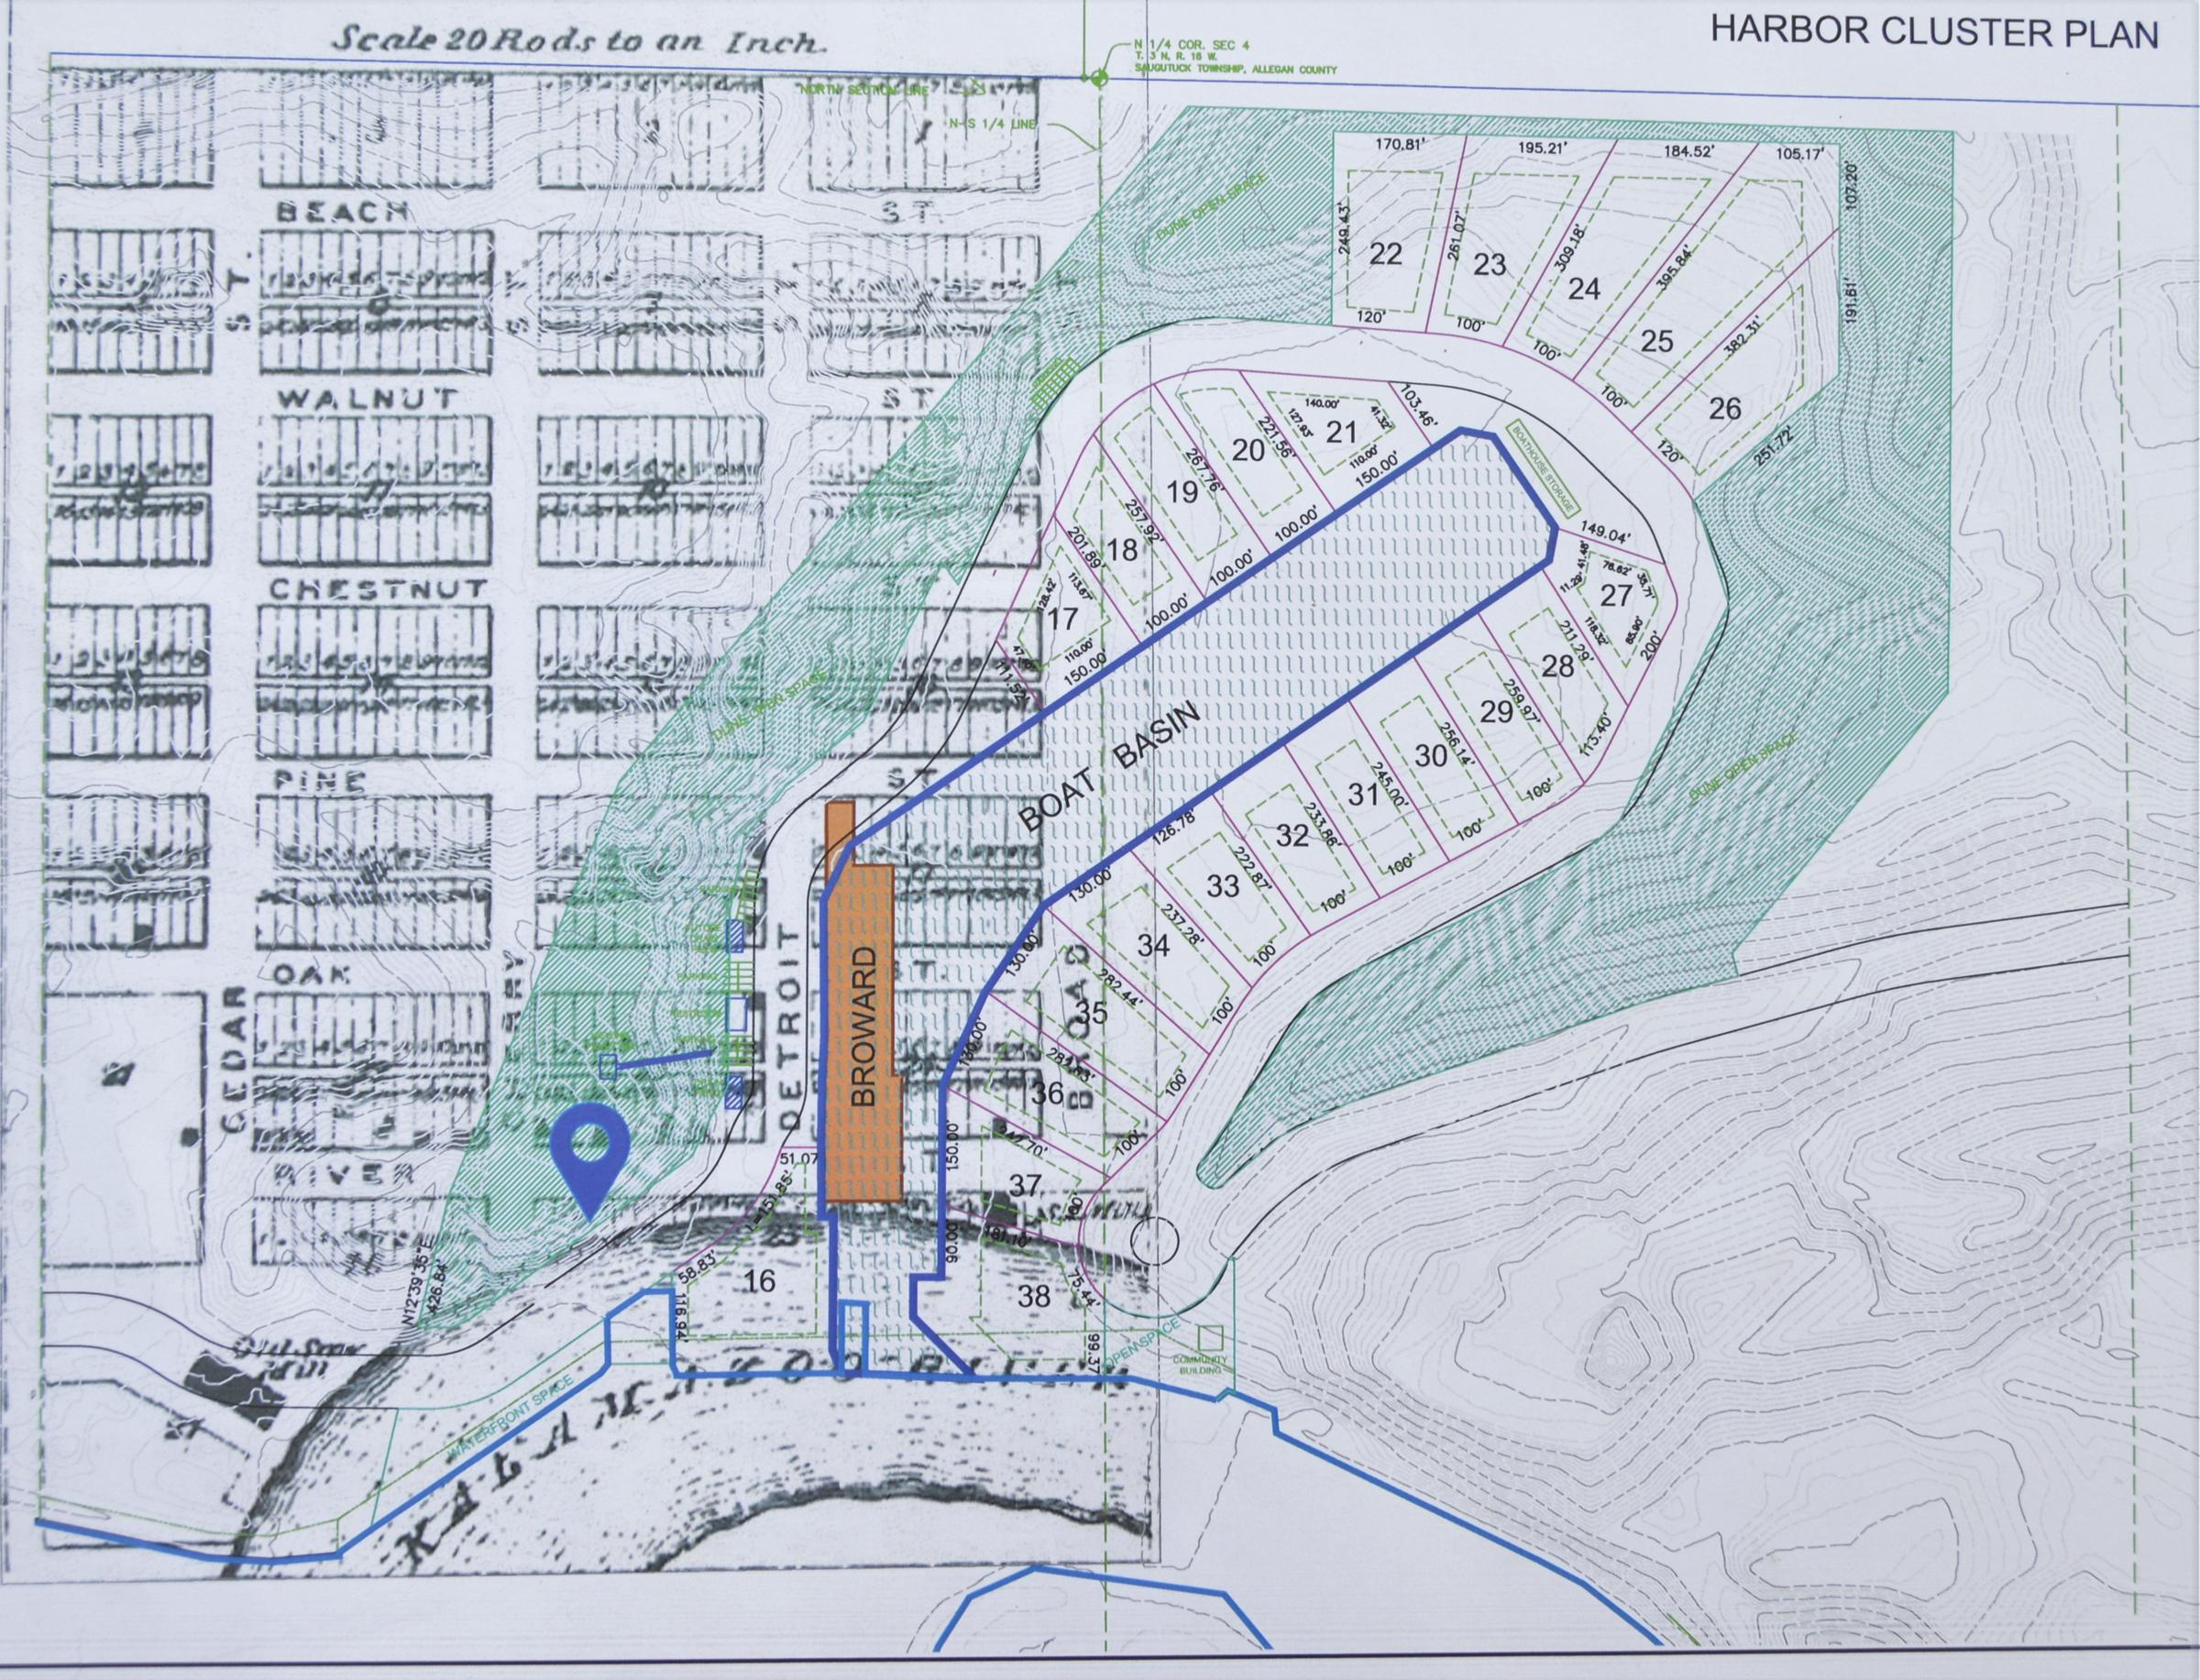 Proposed Calendar X Marks History Pike Place Market Two Sides At Odds Over Development Plans For Saugatuck